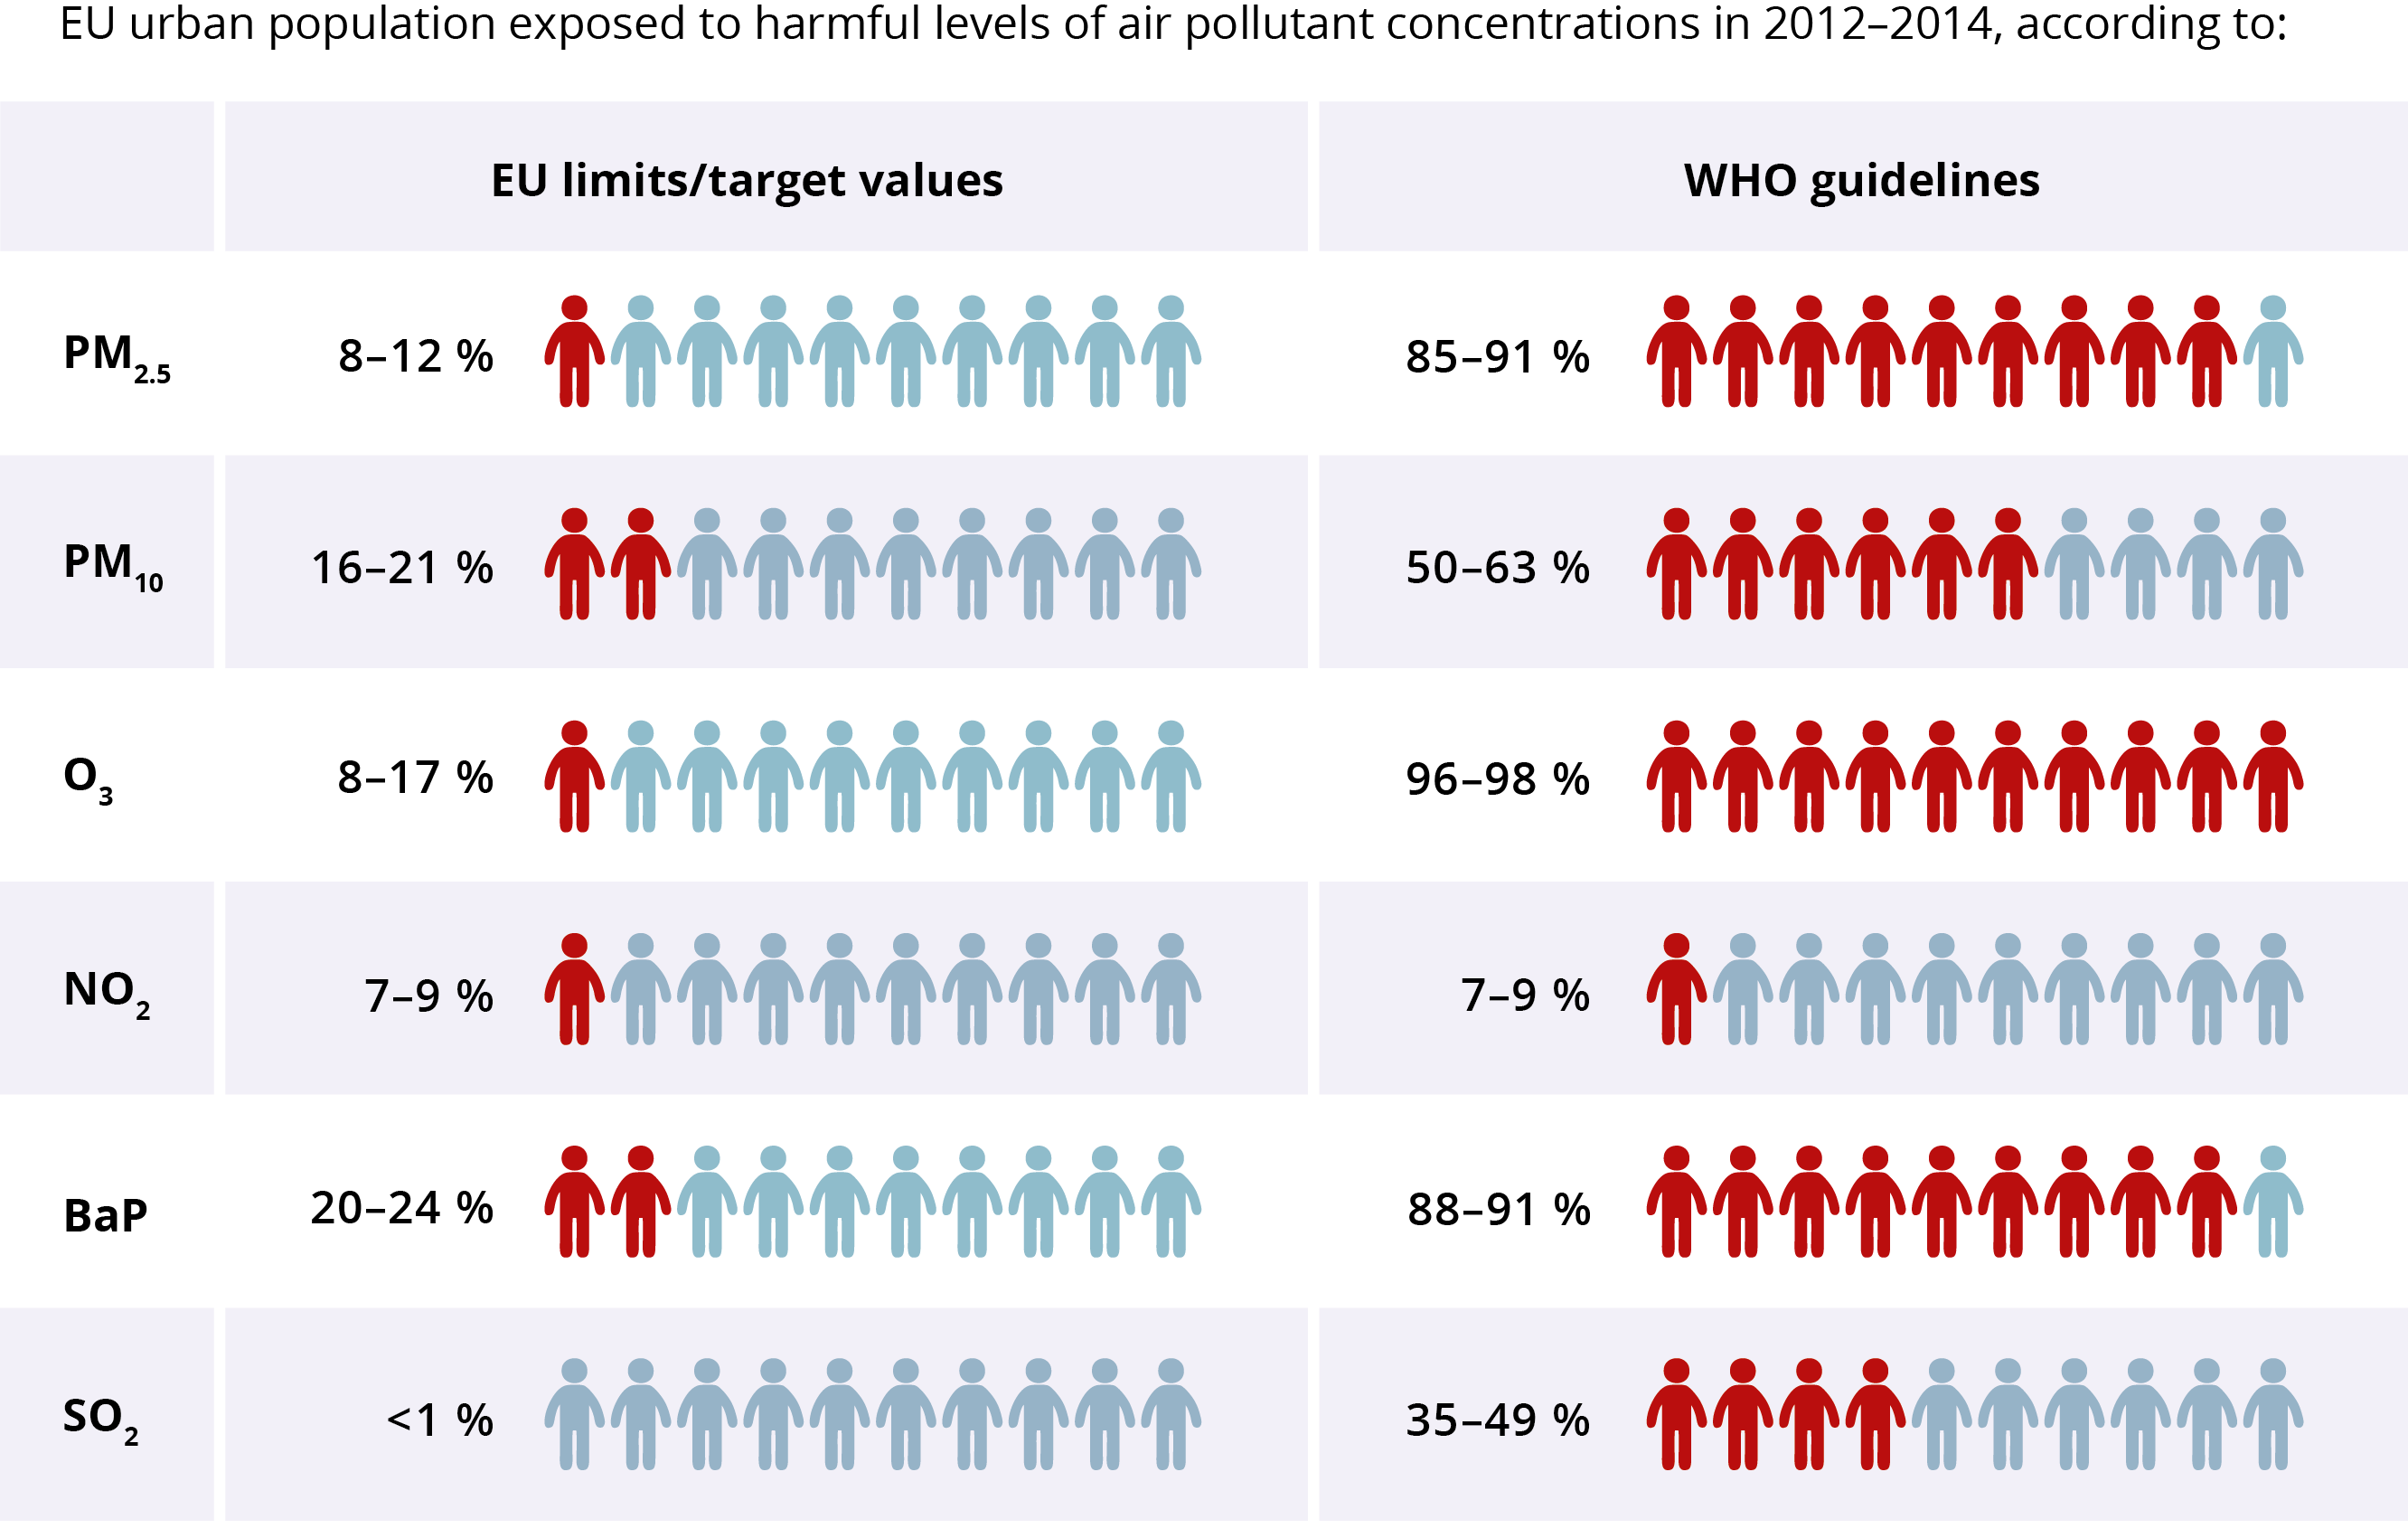 EU urban population exposed to harmful levels of air pollutants in 2012 -2014